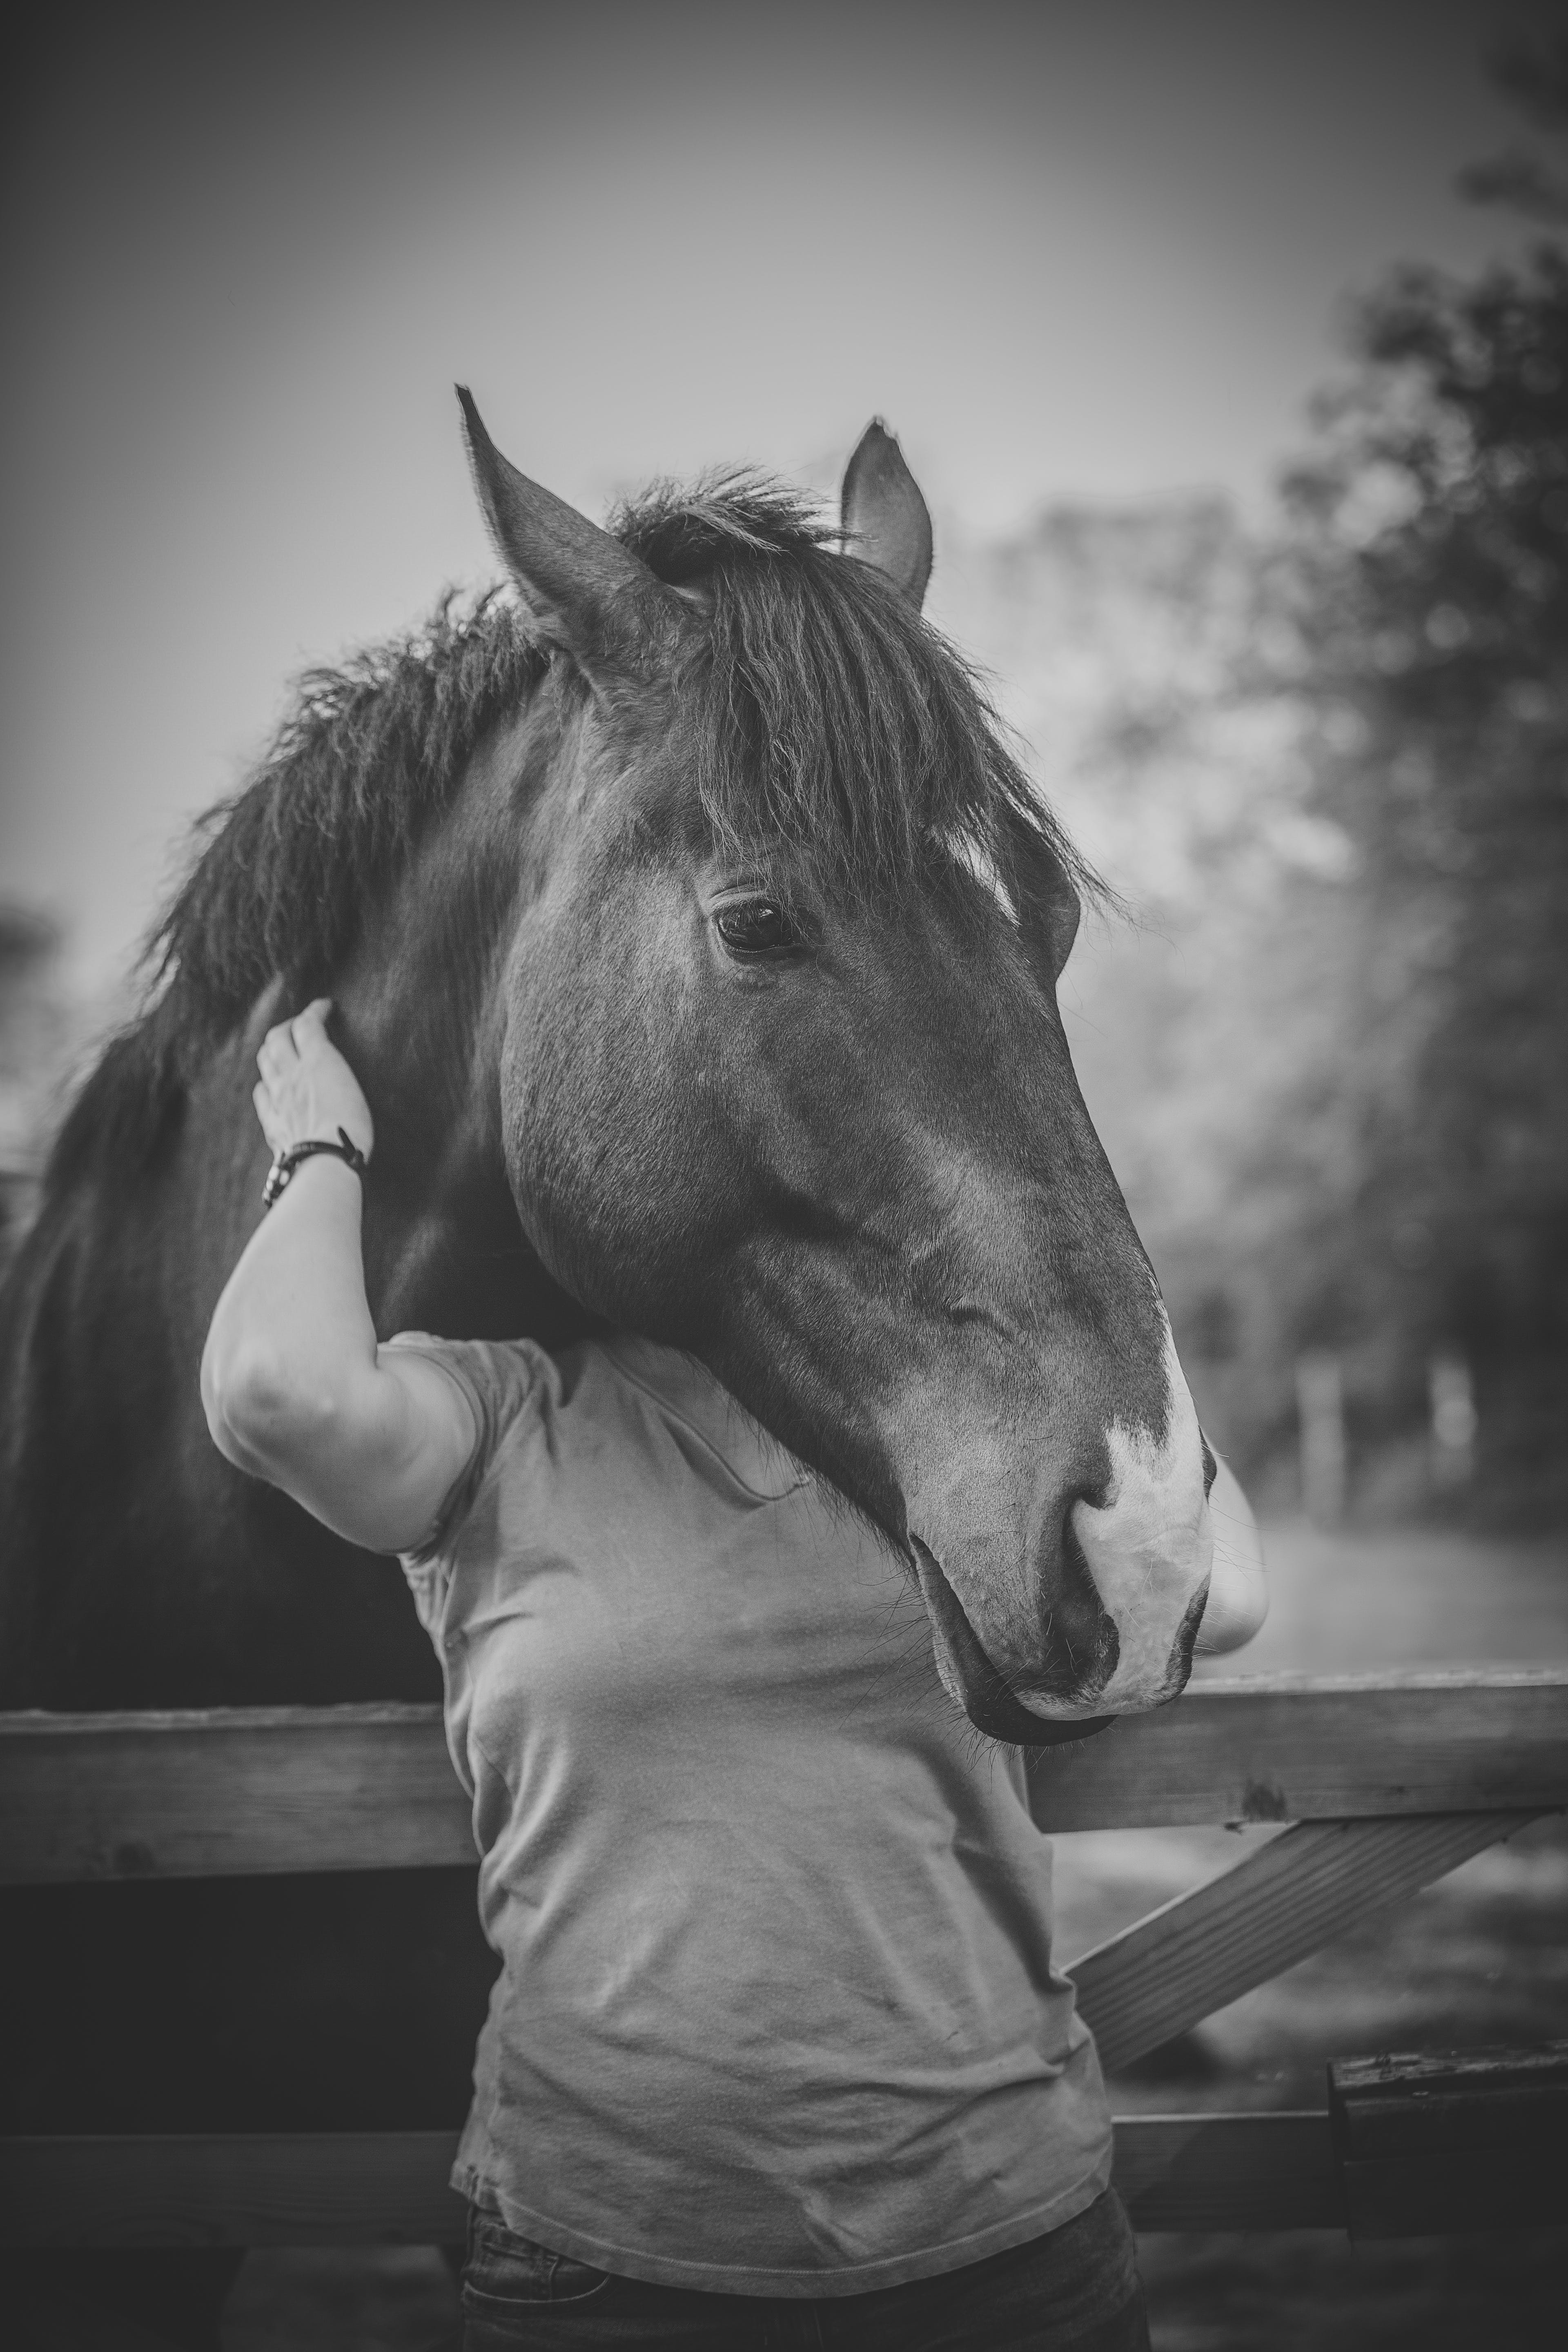 Grayscale Photo of Person Hugging on Horse